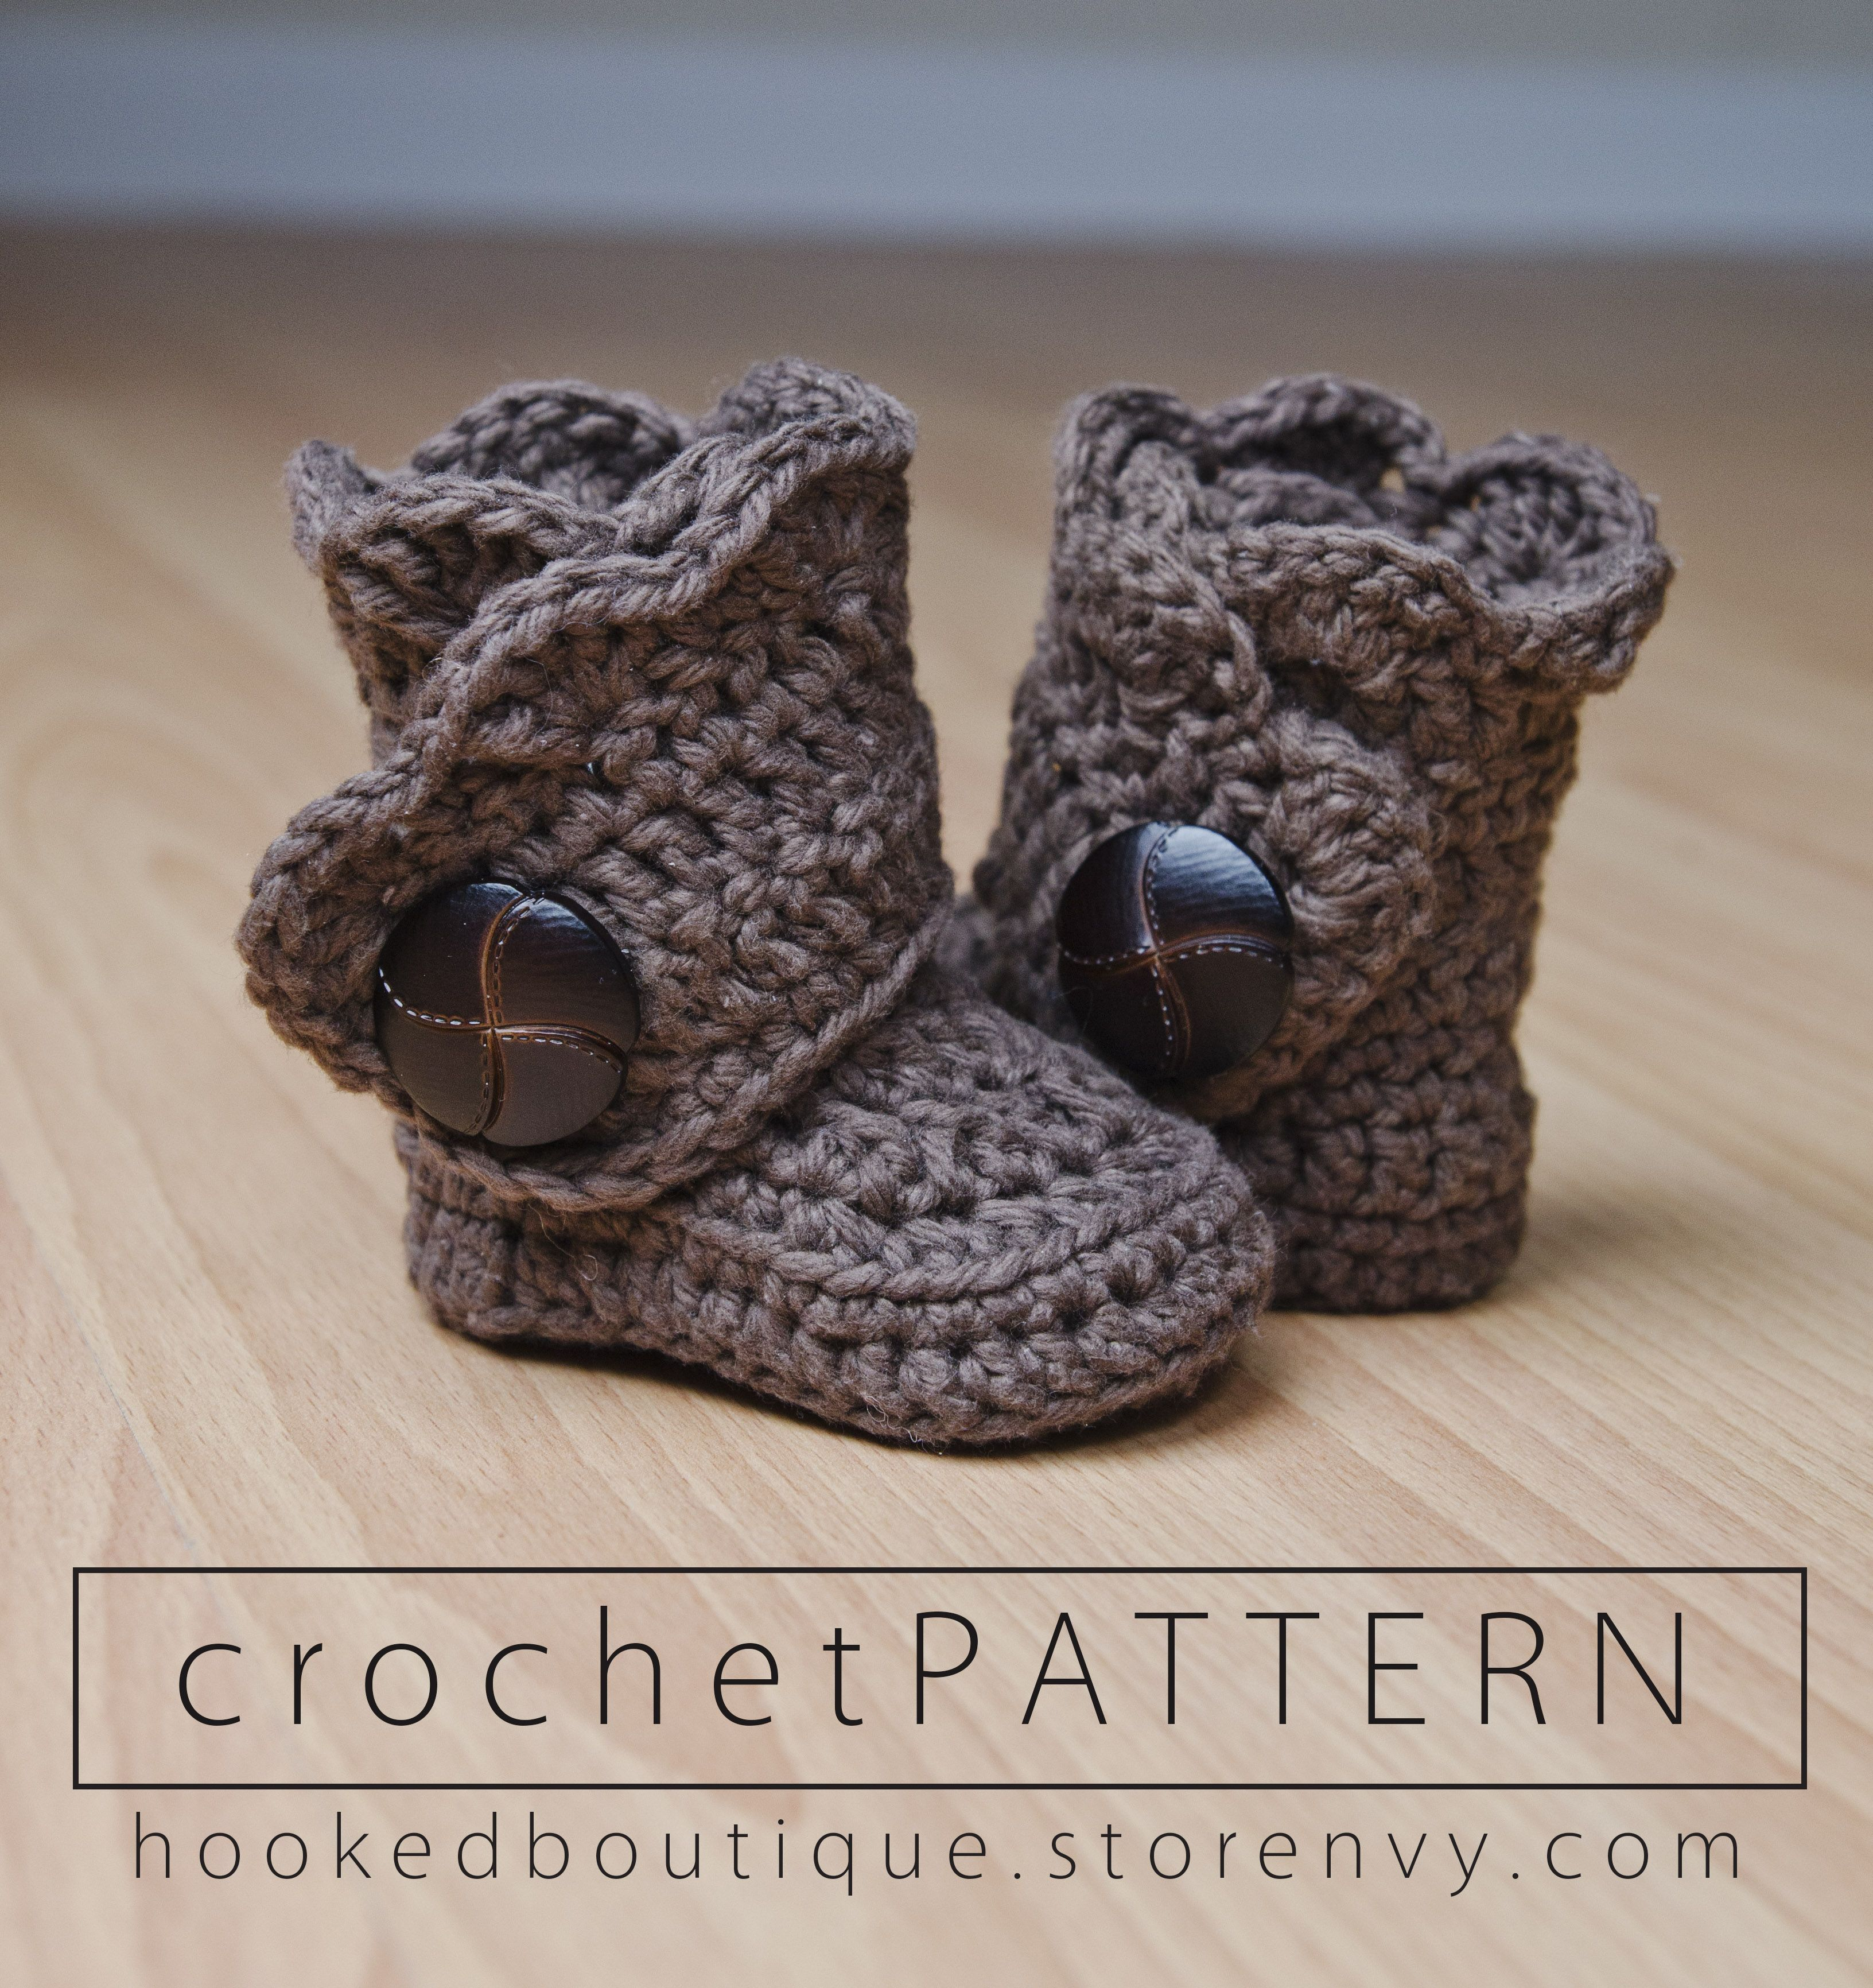 Crochet these modern booties for your special little ones these crochet pattern for baby boots crochet boot pattern booties pattern if i ever learn to crochet lol bankloansurffo Choice Image